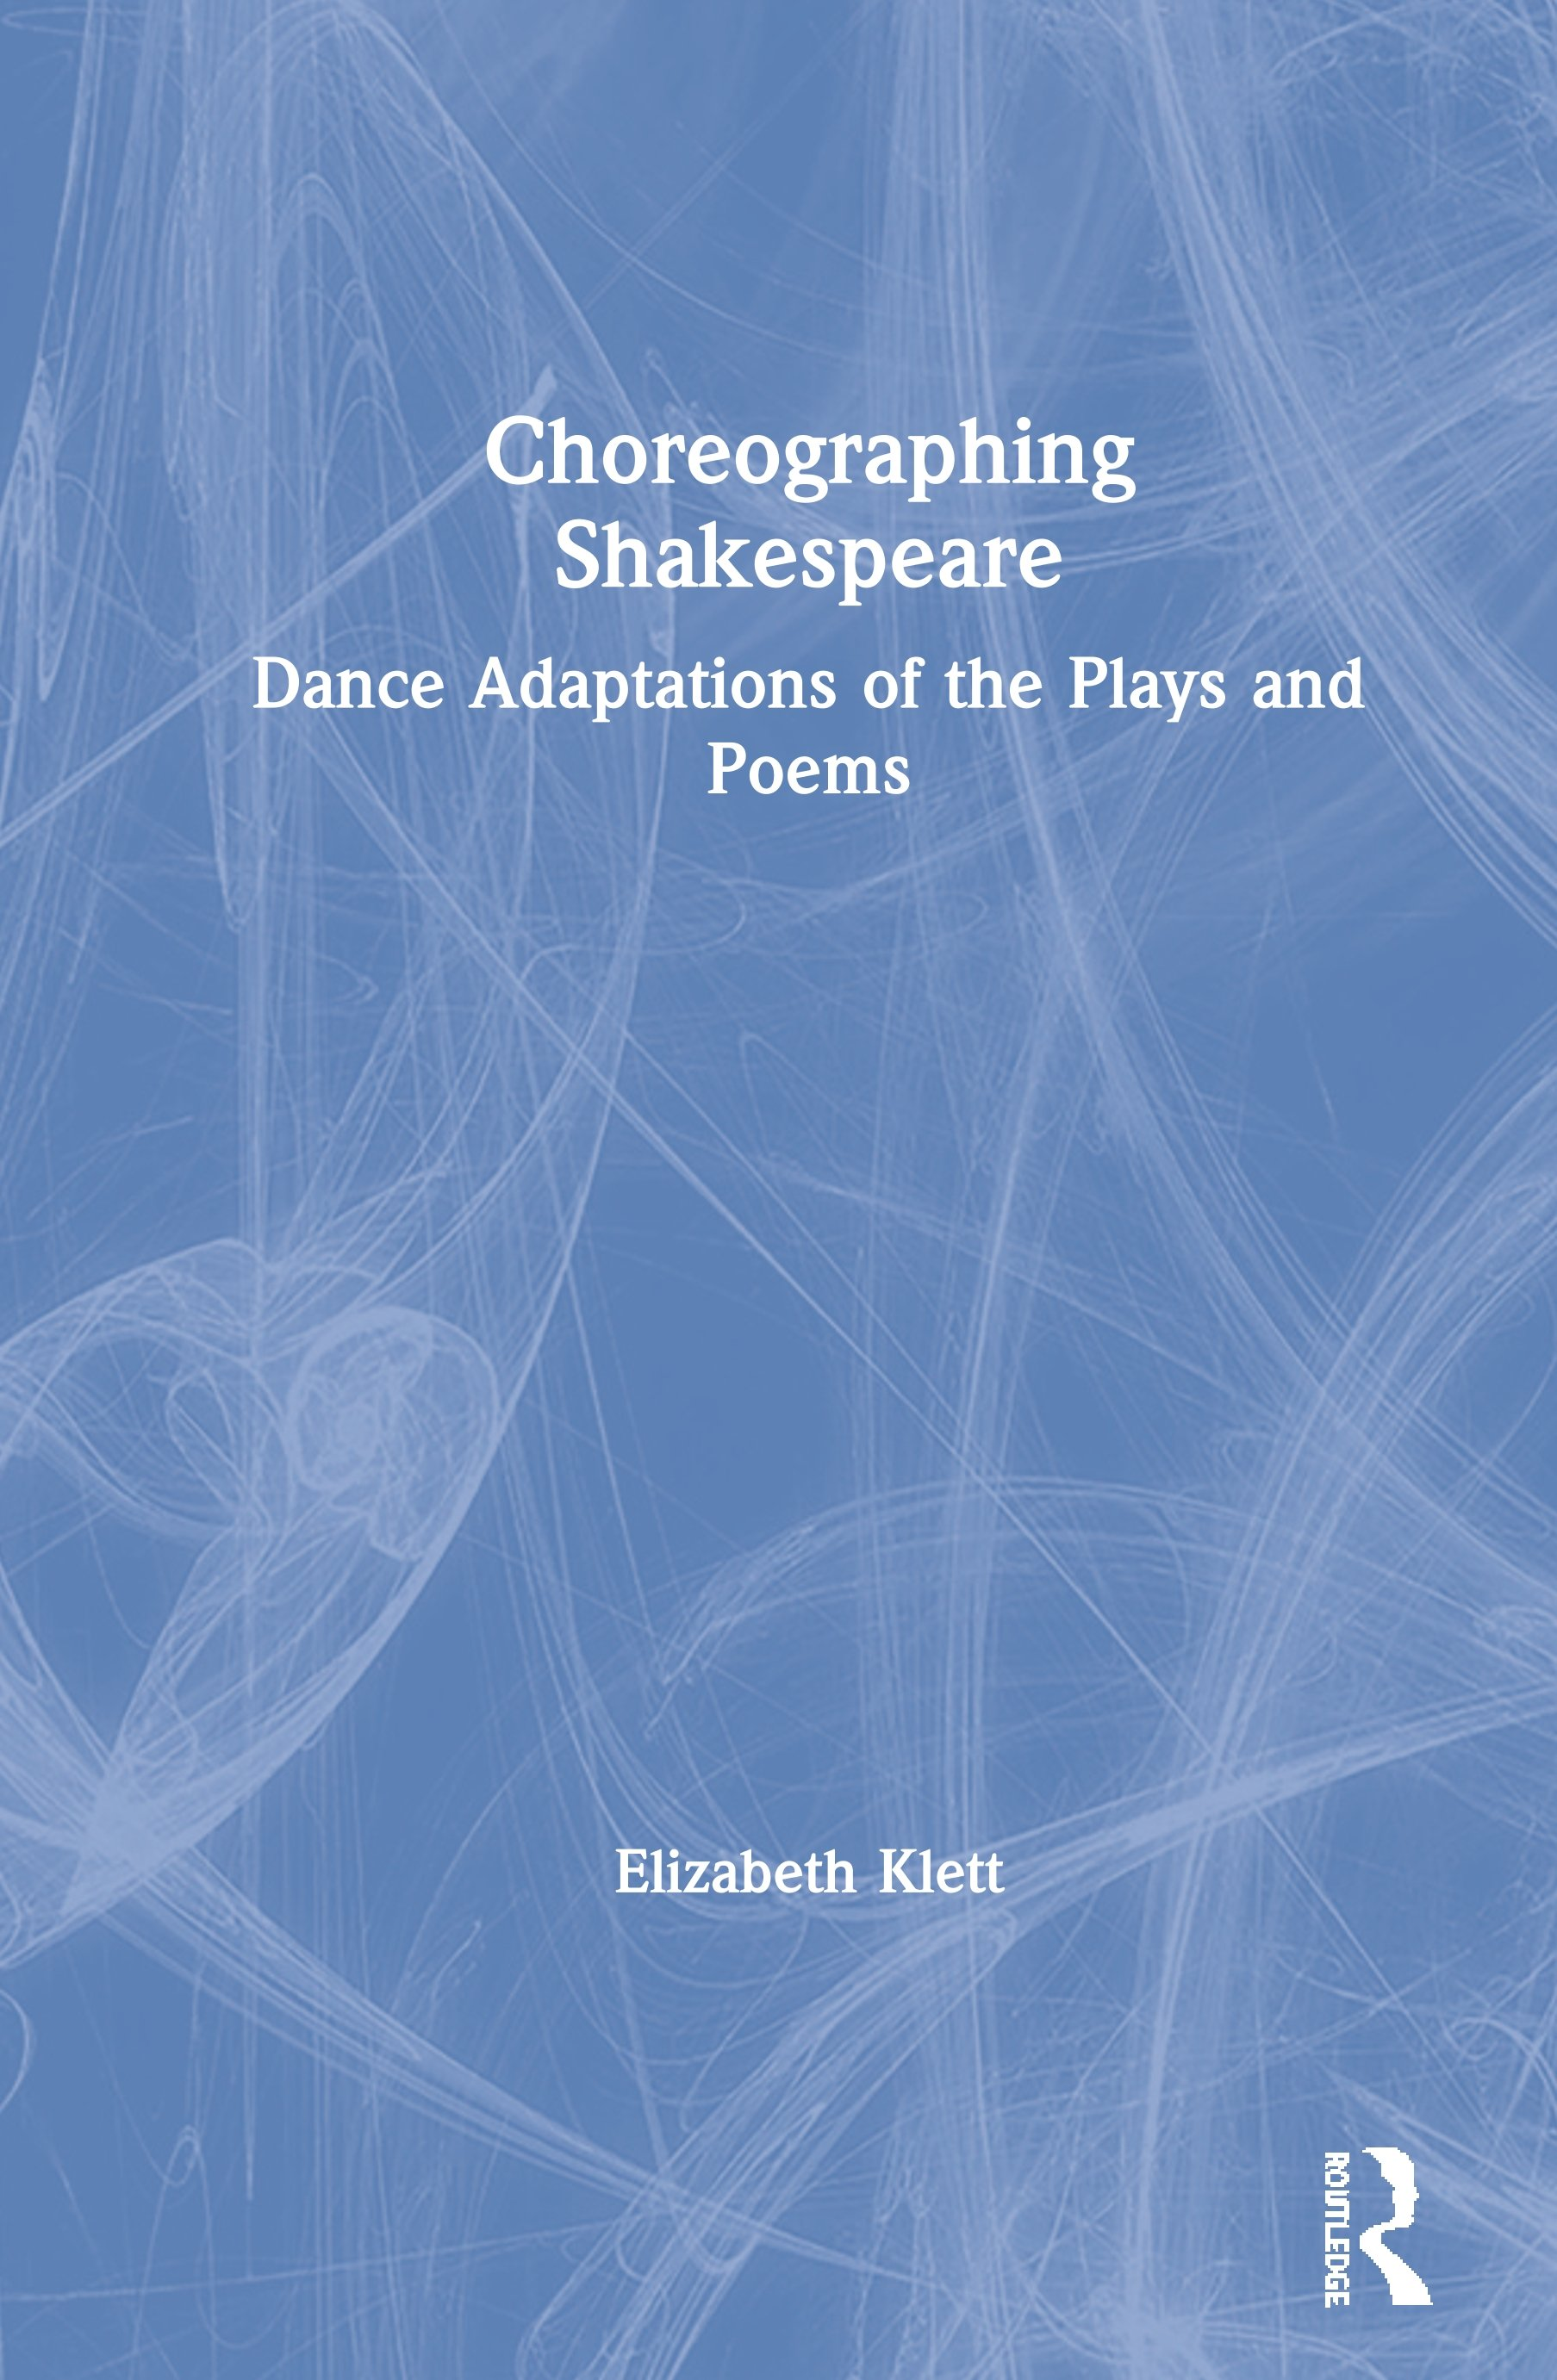 Choreographing Shakespeare: Dance Adaptations of the Plays and Poems book cover